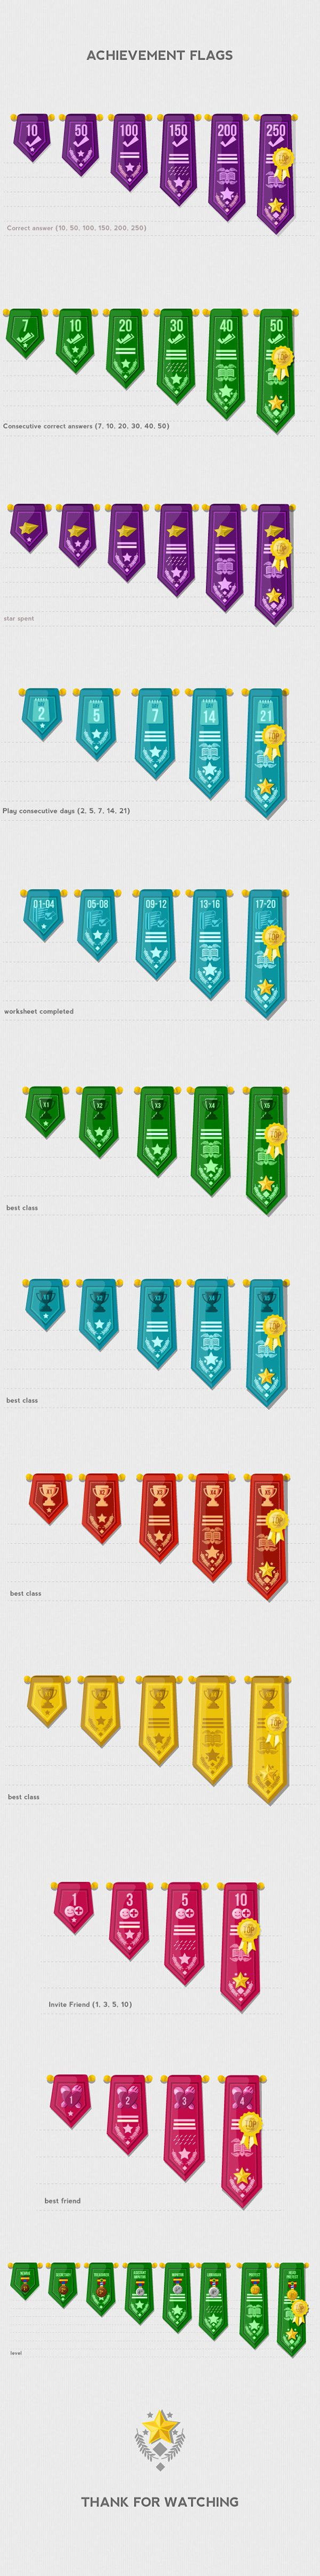 Achievement Badges & Flags 2D Illustrations on Behance